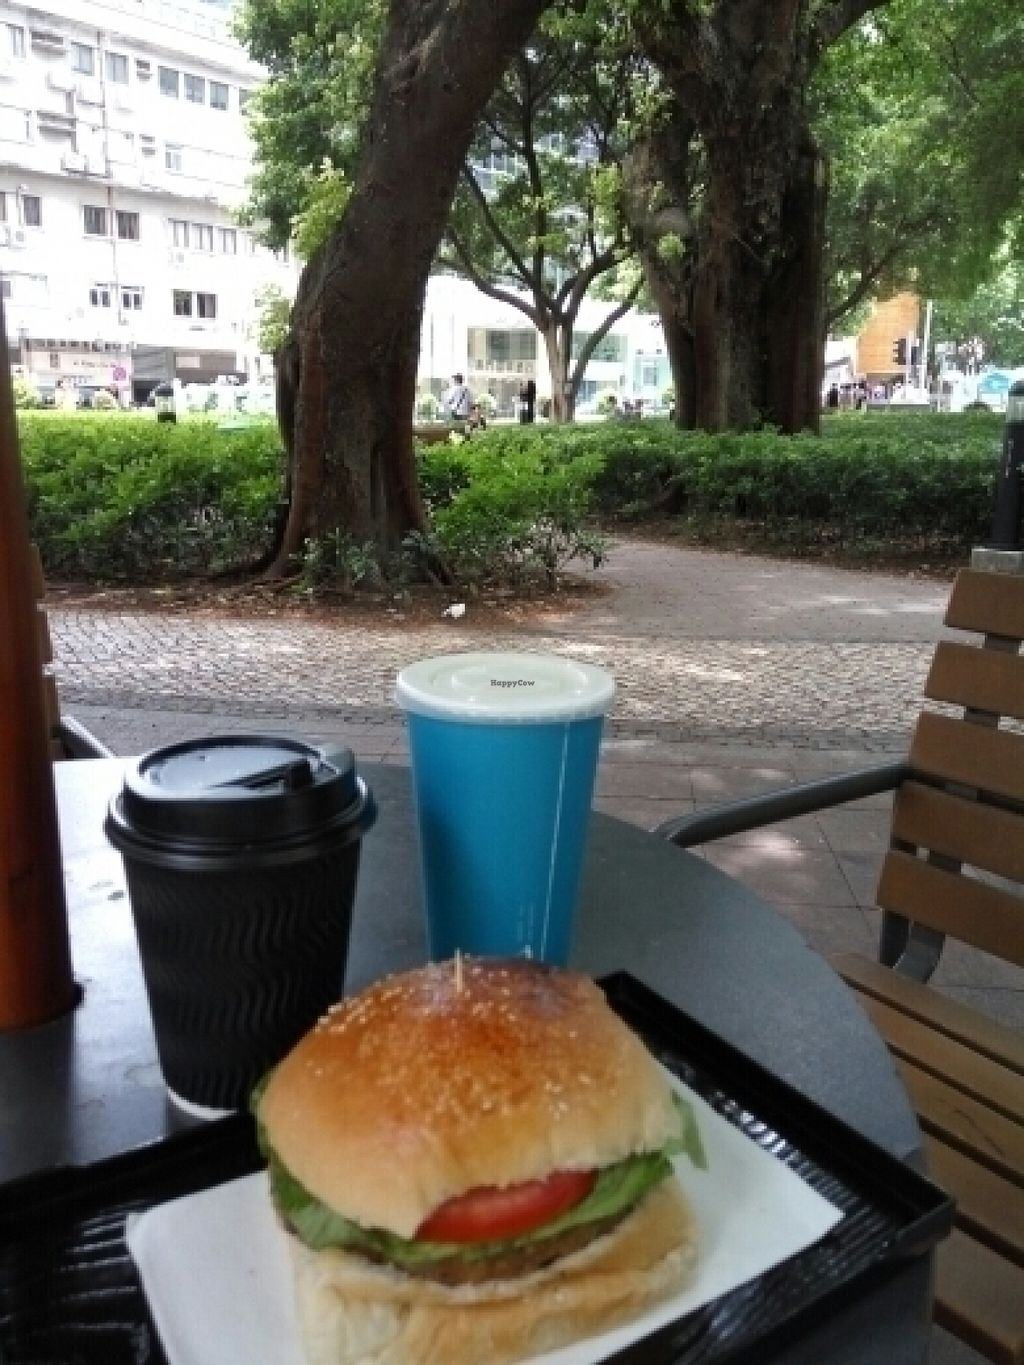 """Photo of Ting Ting Cafe  by <a href=""""/members/profile/pianista"""">pianista</a> <br/>Lovely meal in the park close to the city centre <br/> July 19, 2016  - <a href='/contact/abuse/image/58022/160827'>Report</a>"""